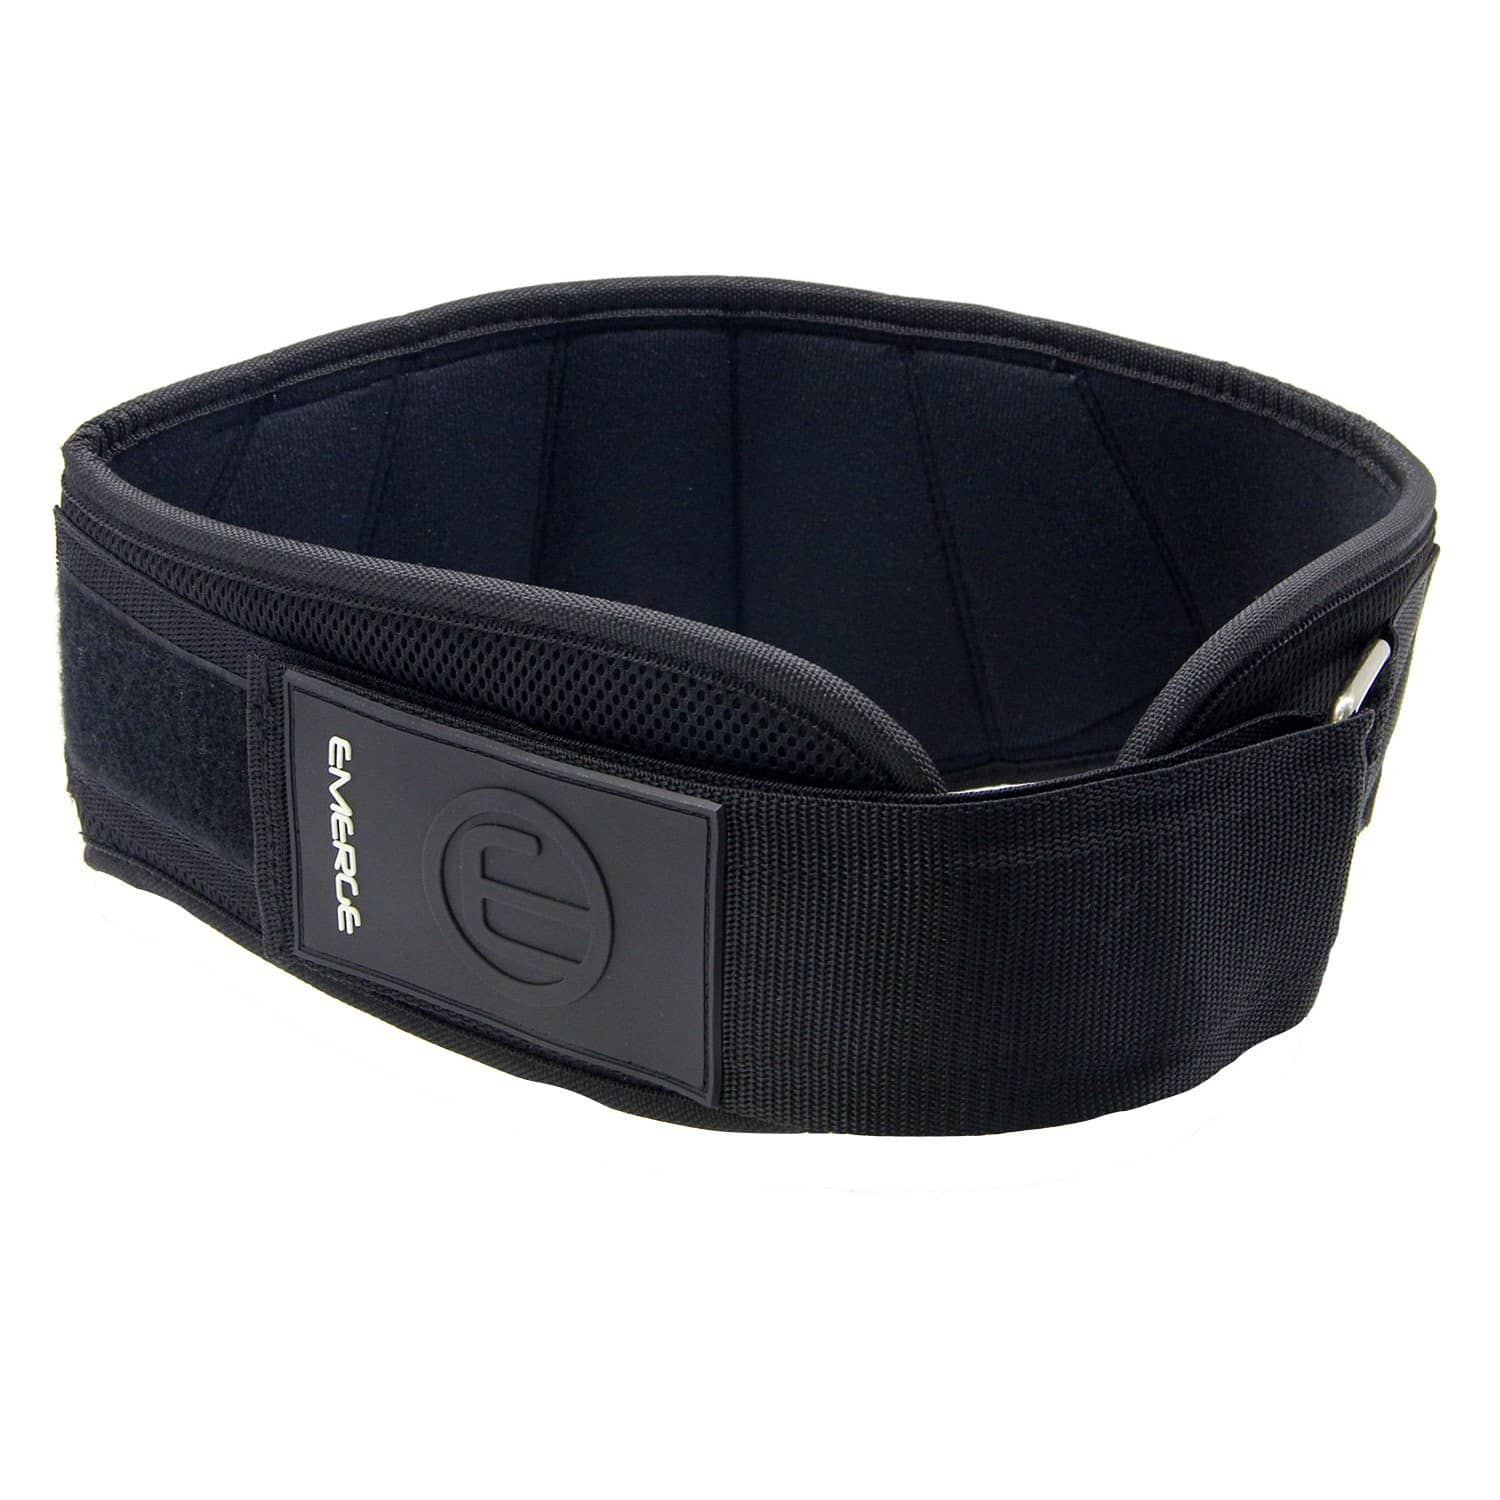 WEIGHTLIFTING TRAINING POWER BELT